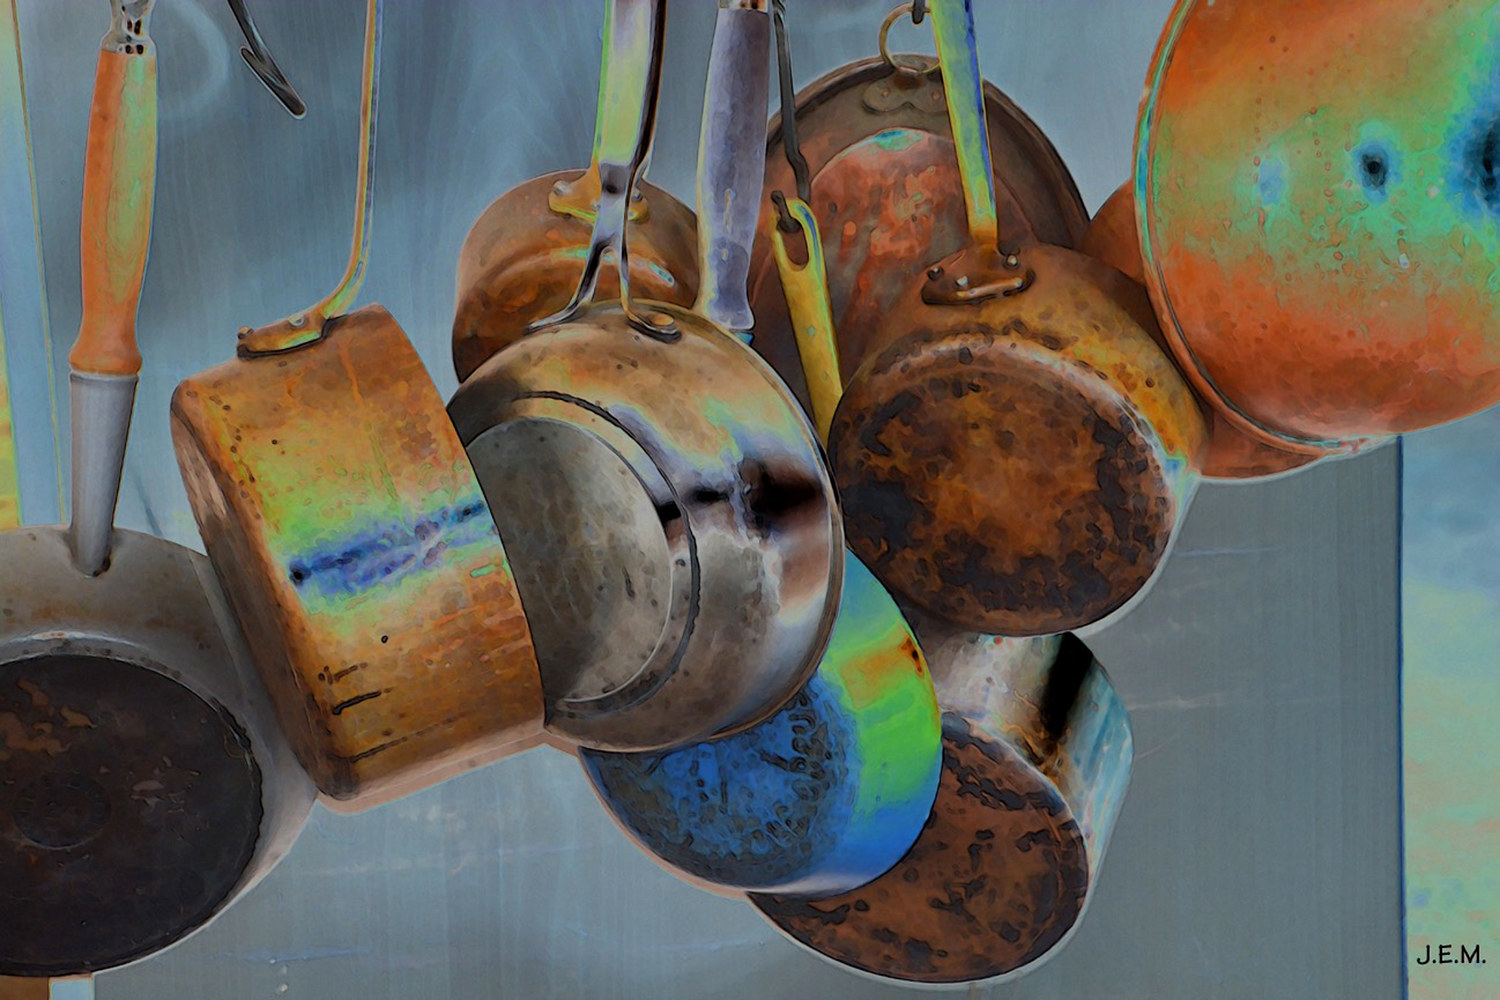 POTS AND PANS by Joeann Edmonds-Matthew